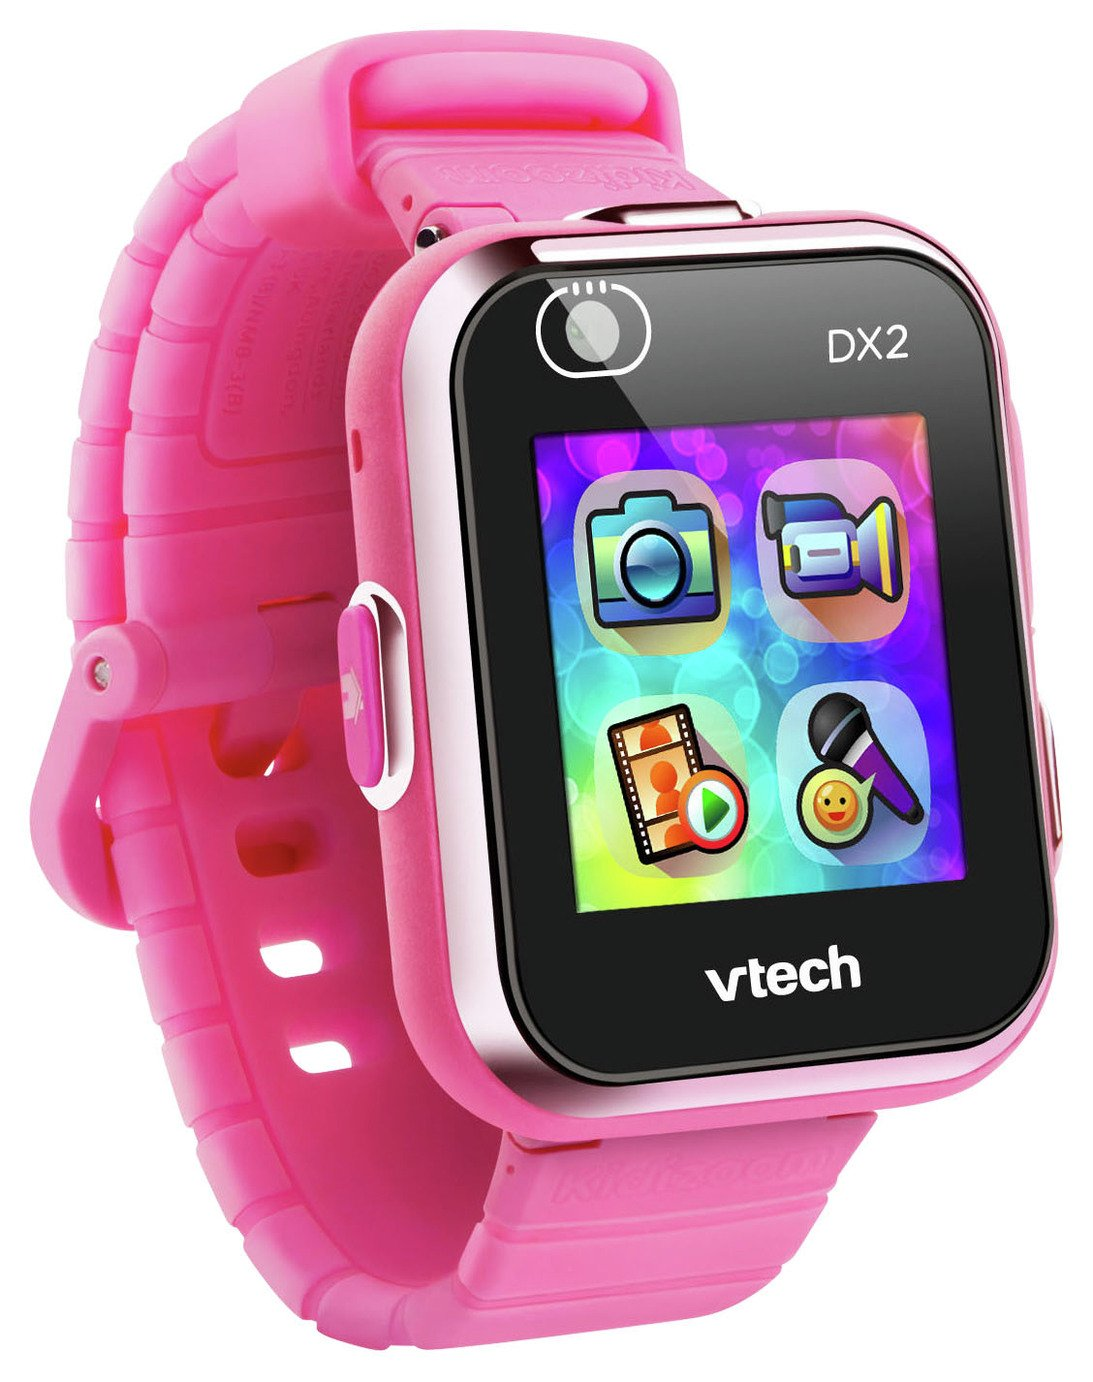 VTech Kidizoom Dual Camera Smart Watch - Pink from VTech